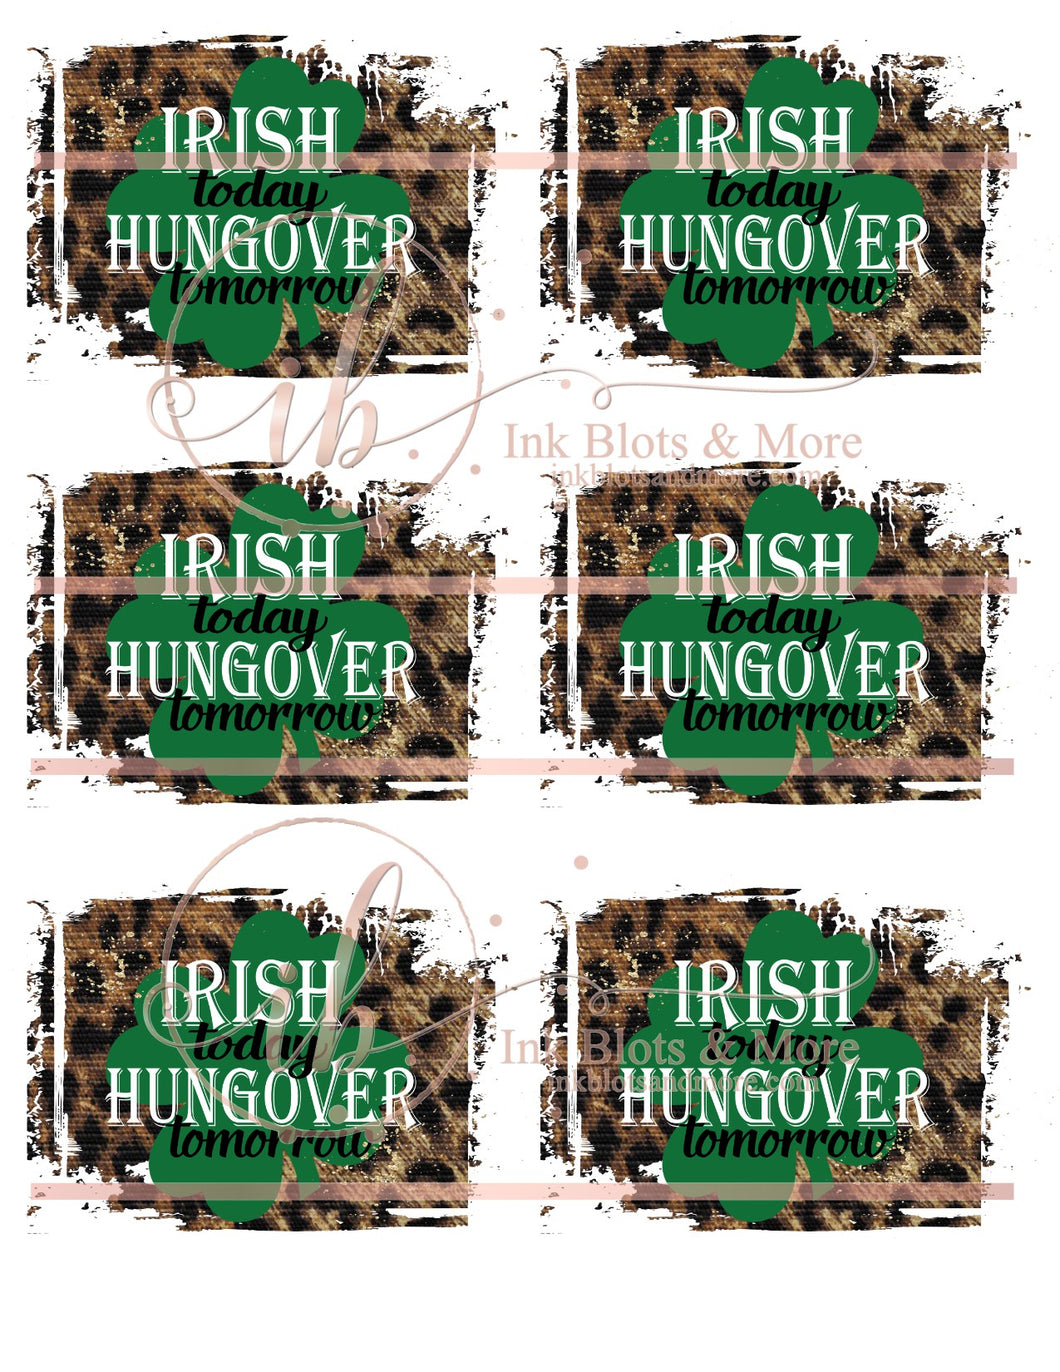 Irish Hangover